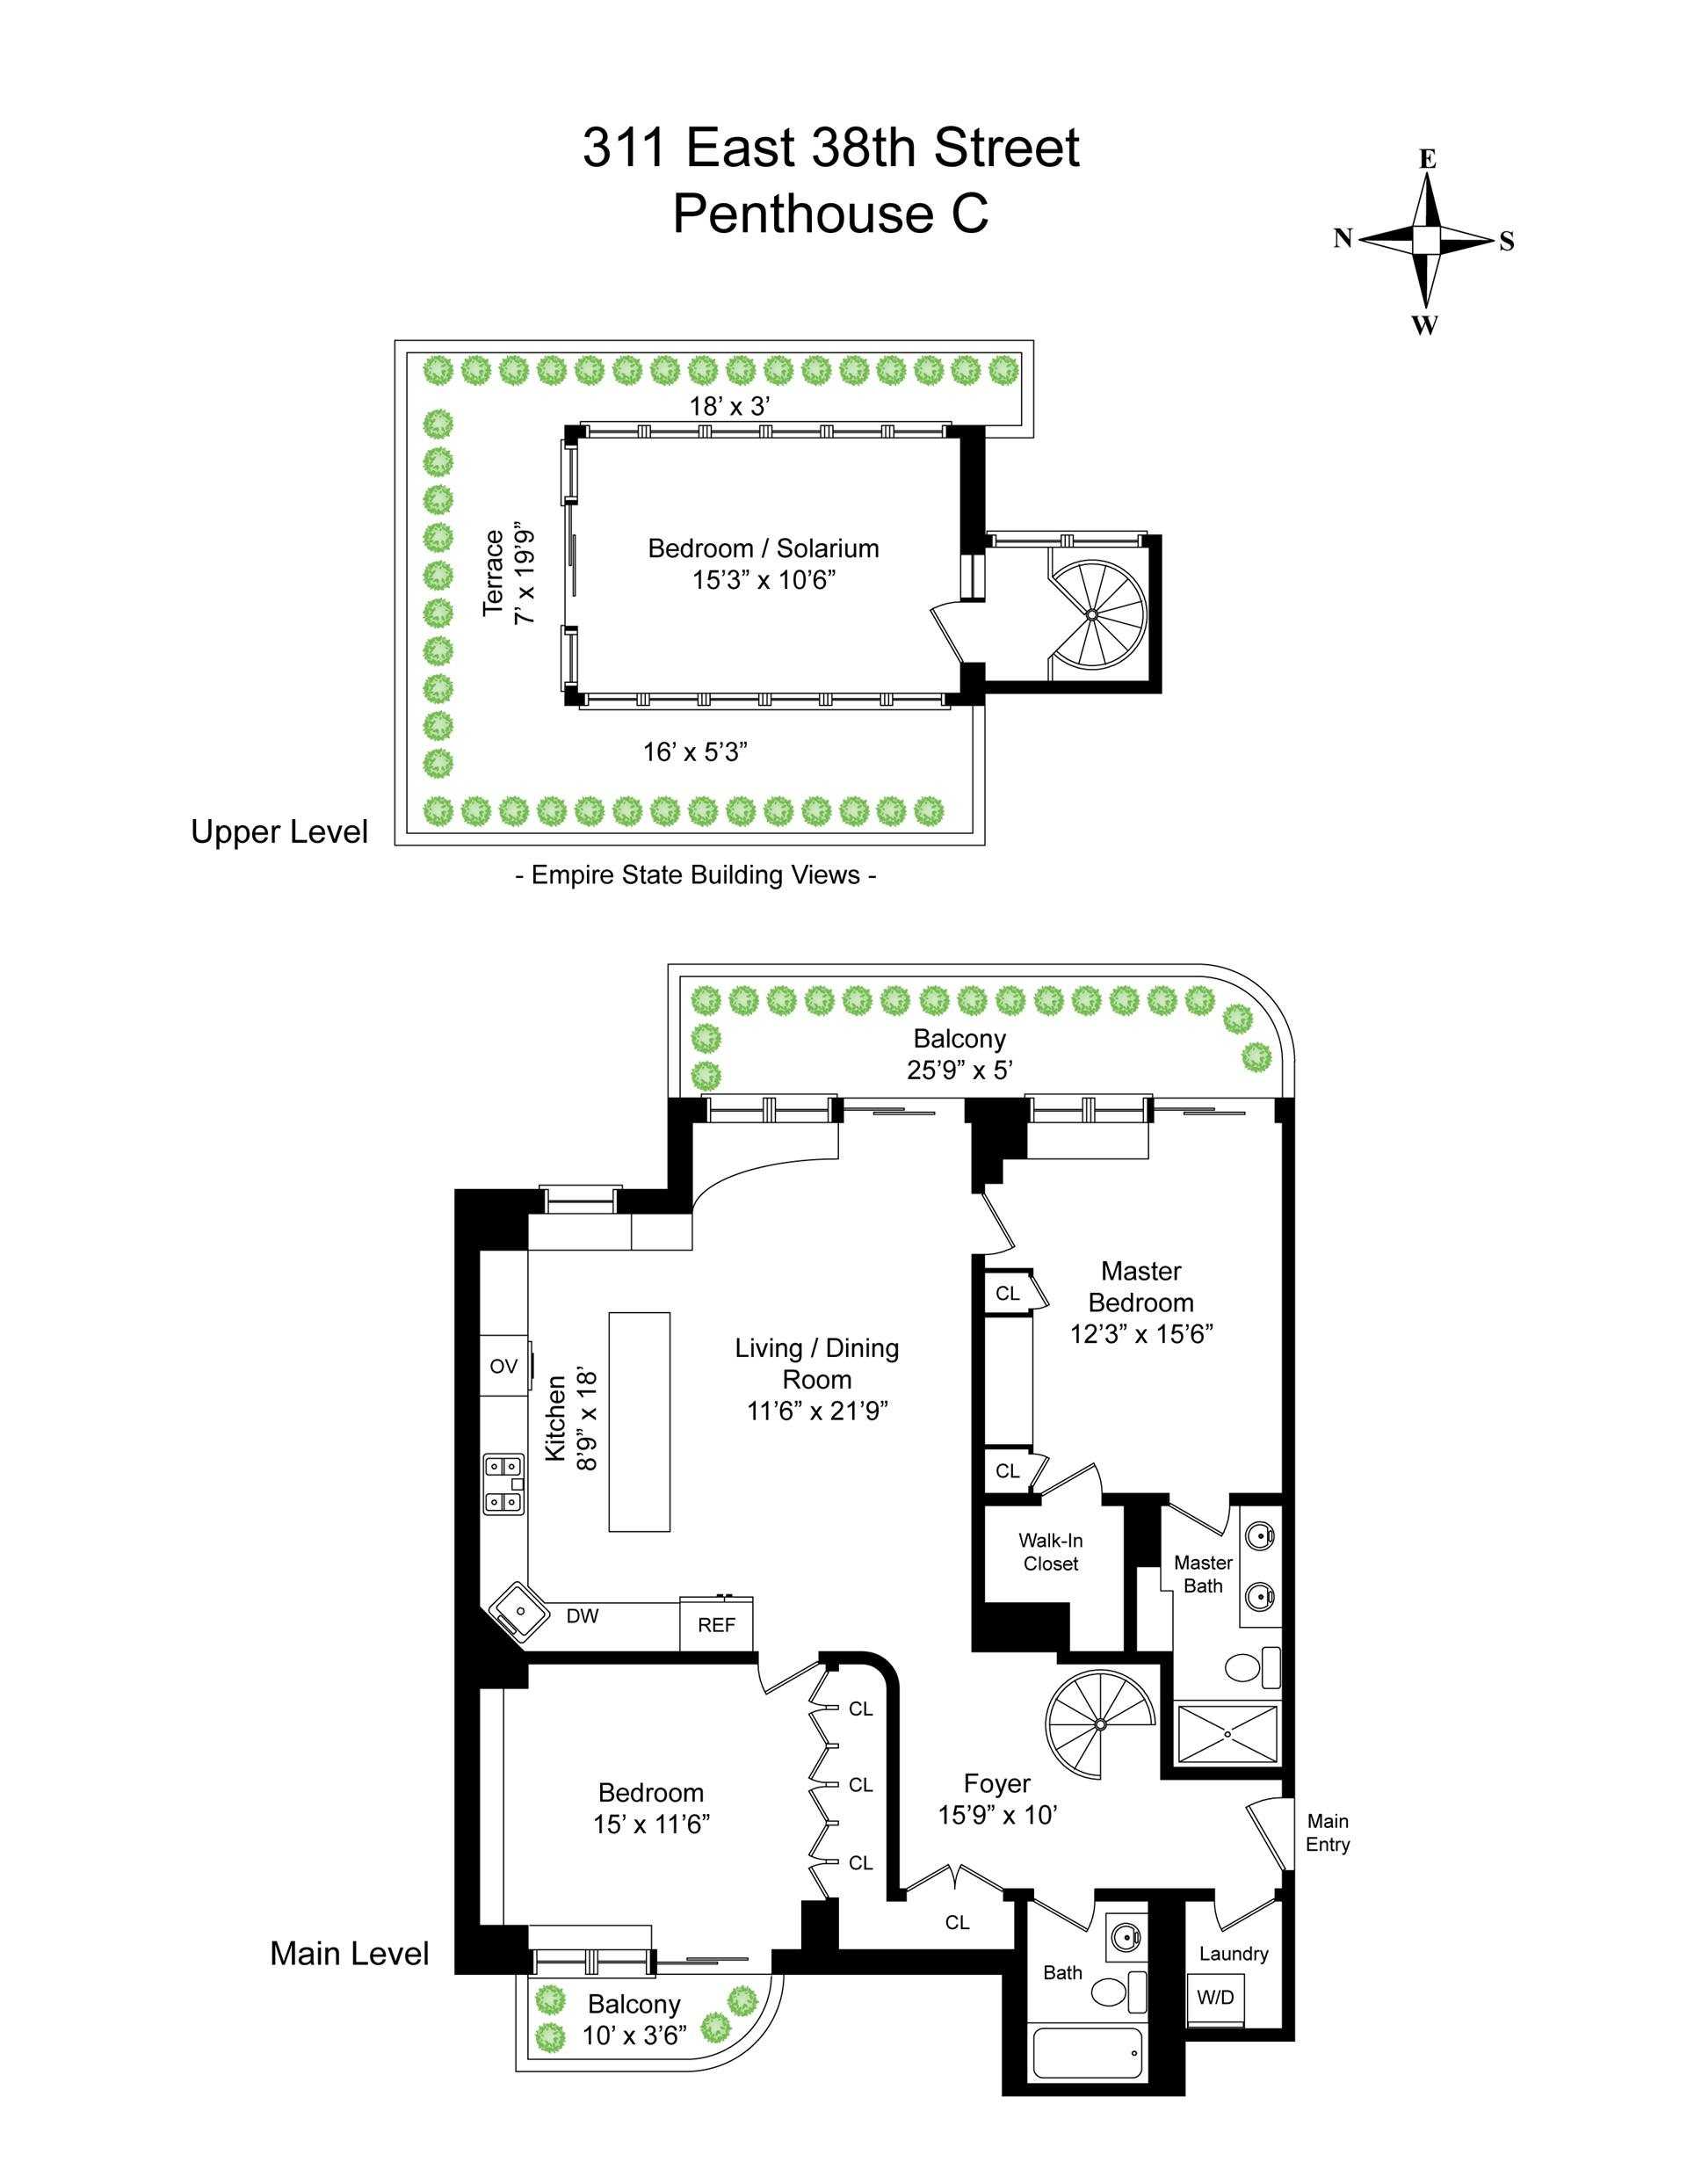 Floor plan of THE WHITNEY, 311 East 38th St, PHC - Murray Hill, New York